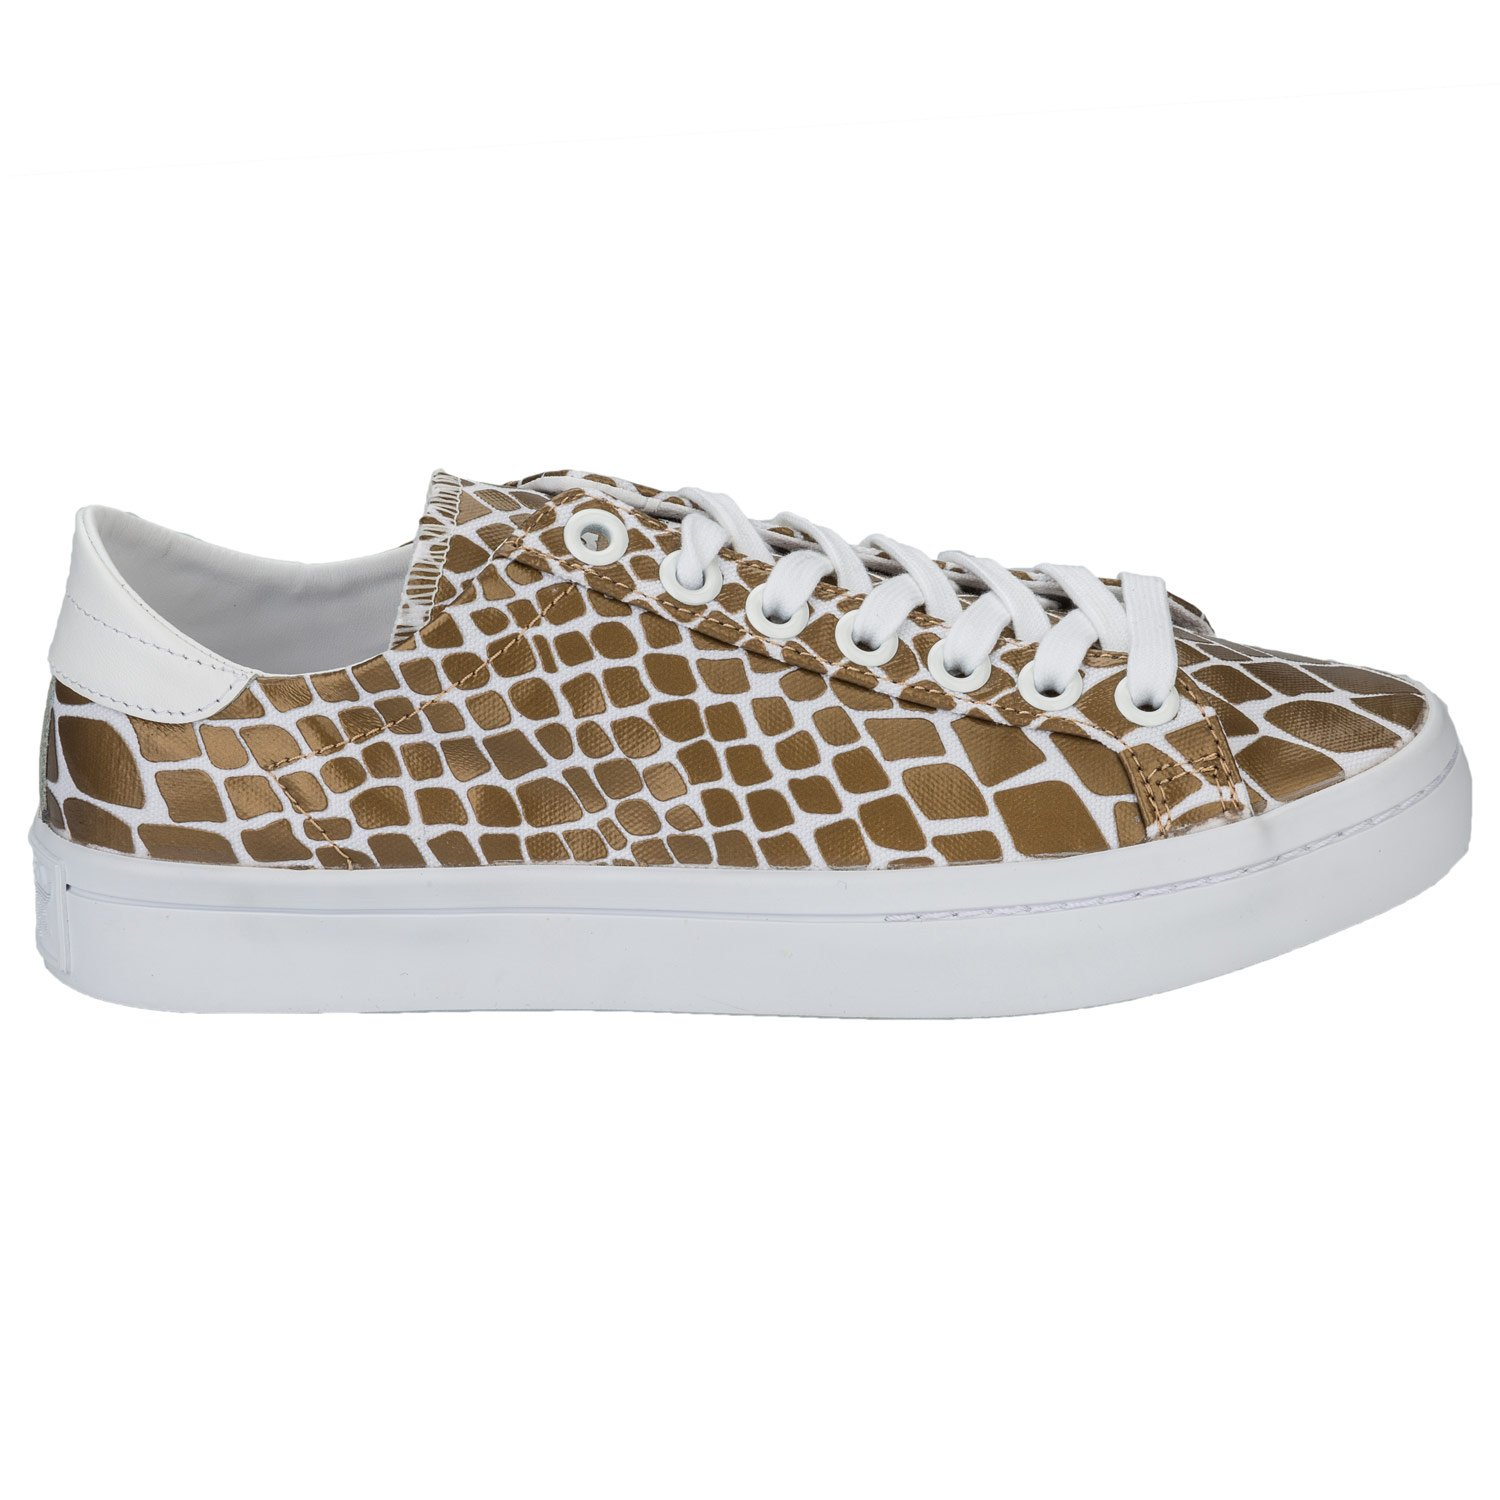 new product e5977 b3f7b Amazon.com   adidas Originals Womens Court Vantage Snake Skin Trainers  White, Gold   Fashion Sneakers